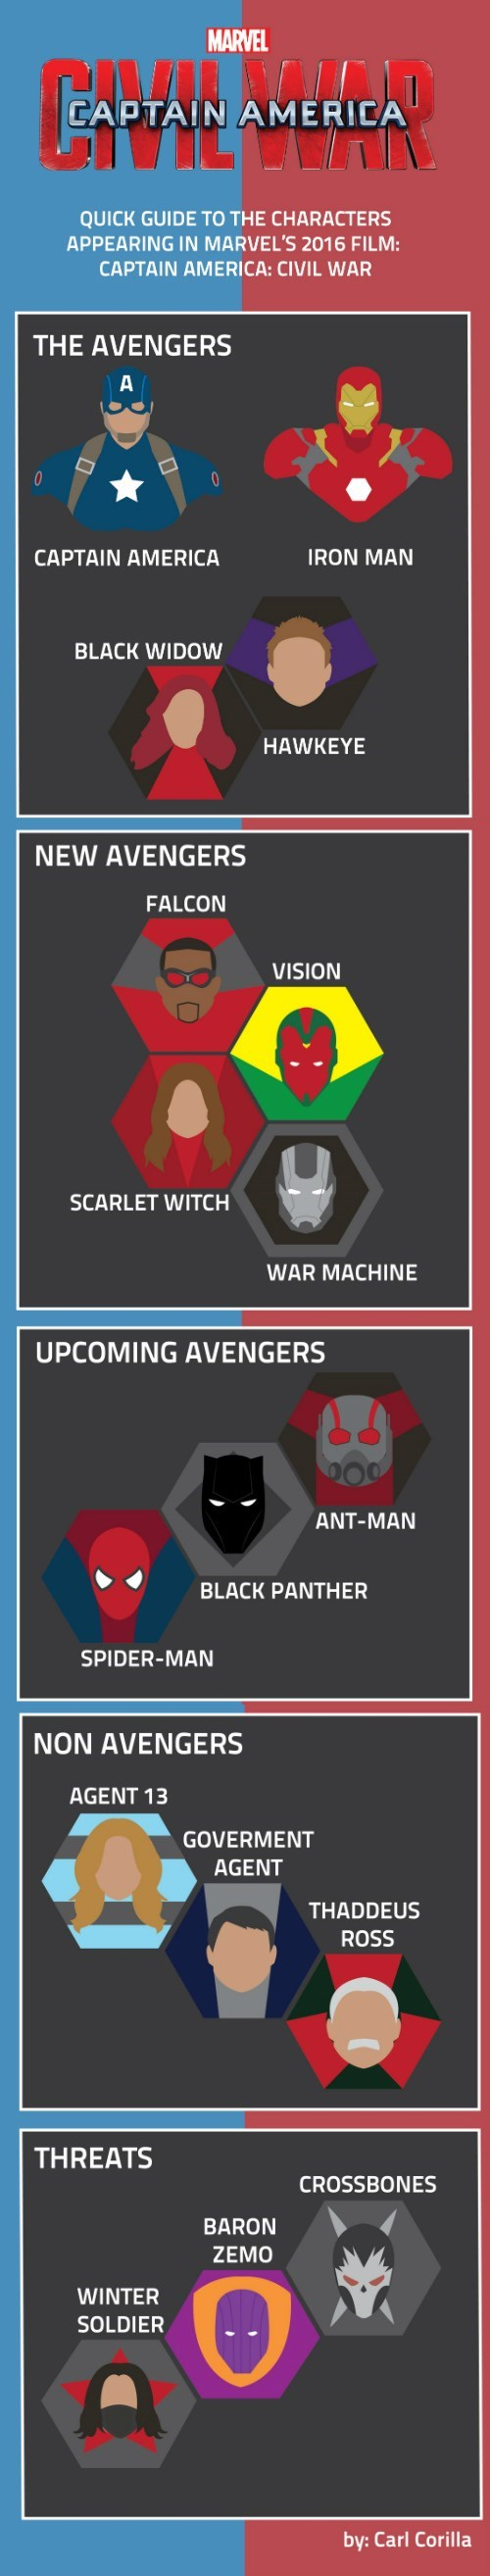 superheroes-captain-america-marvel-civil-war-avengers-infographic-guide